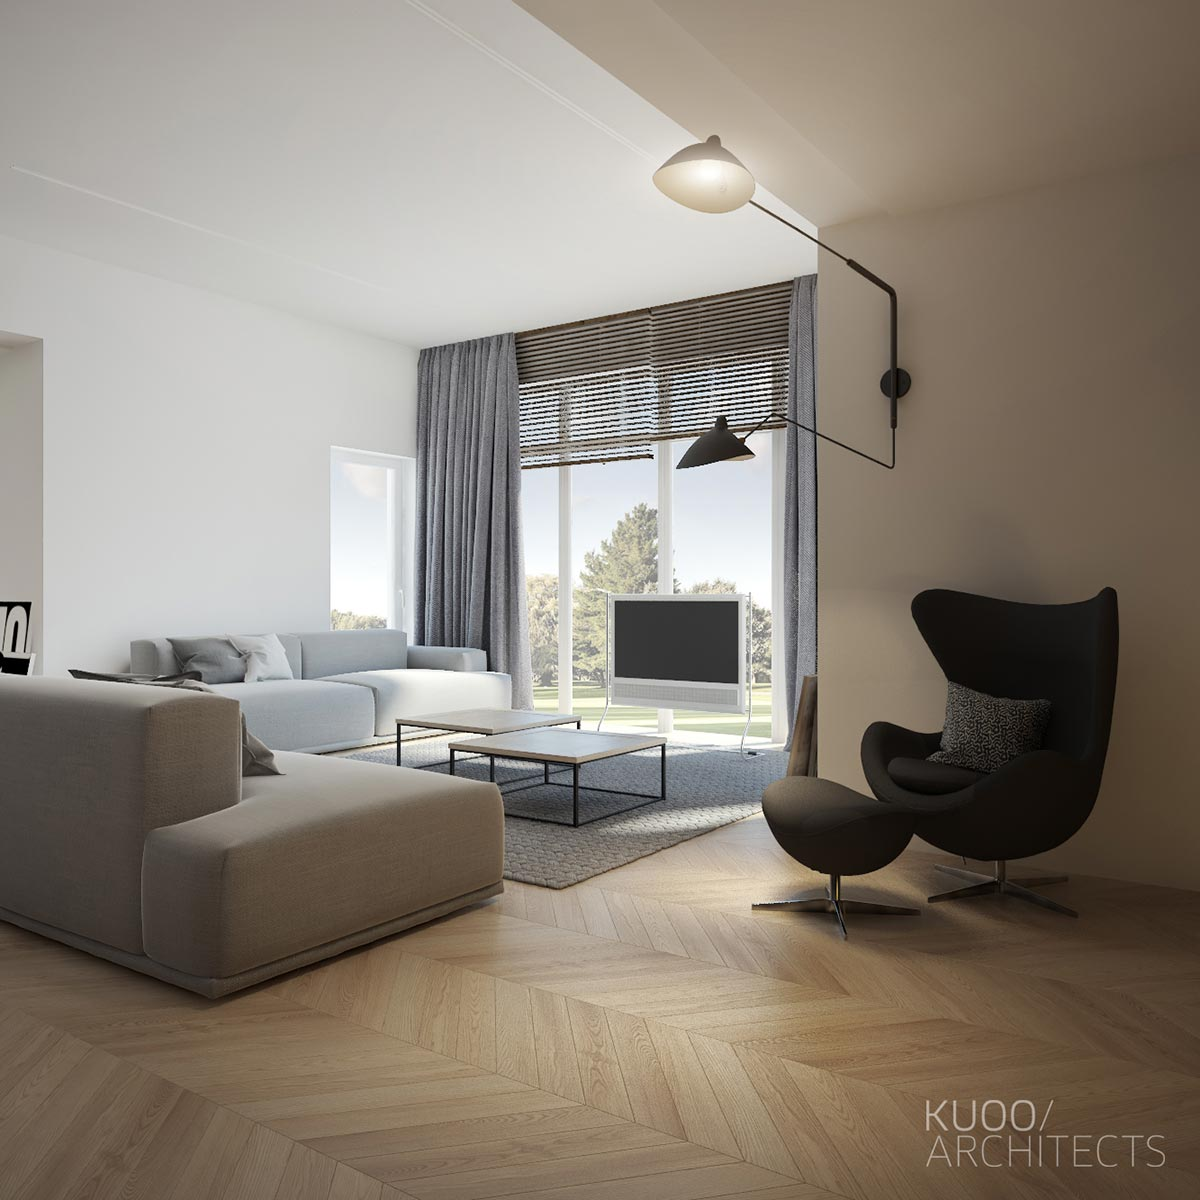 77_kuoo_architects_interior_design_minimal_contemporary_logo